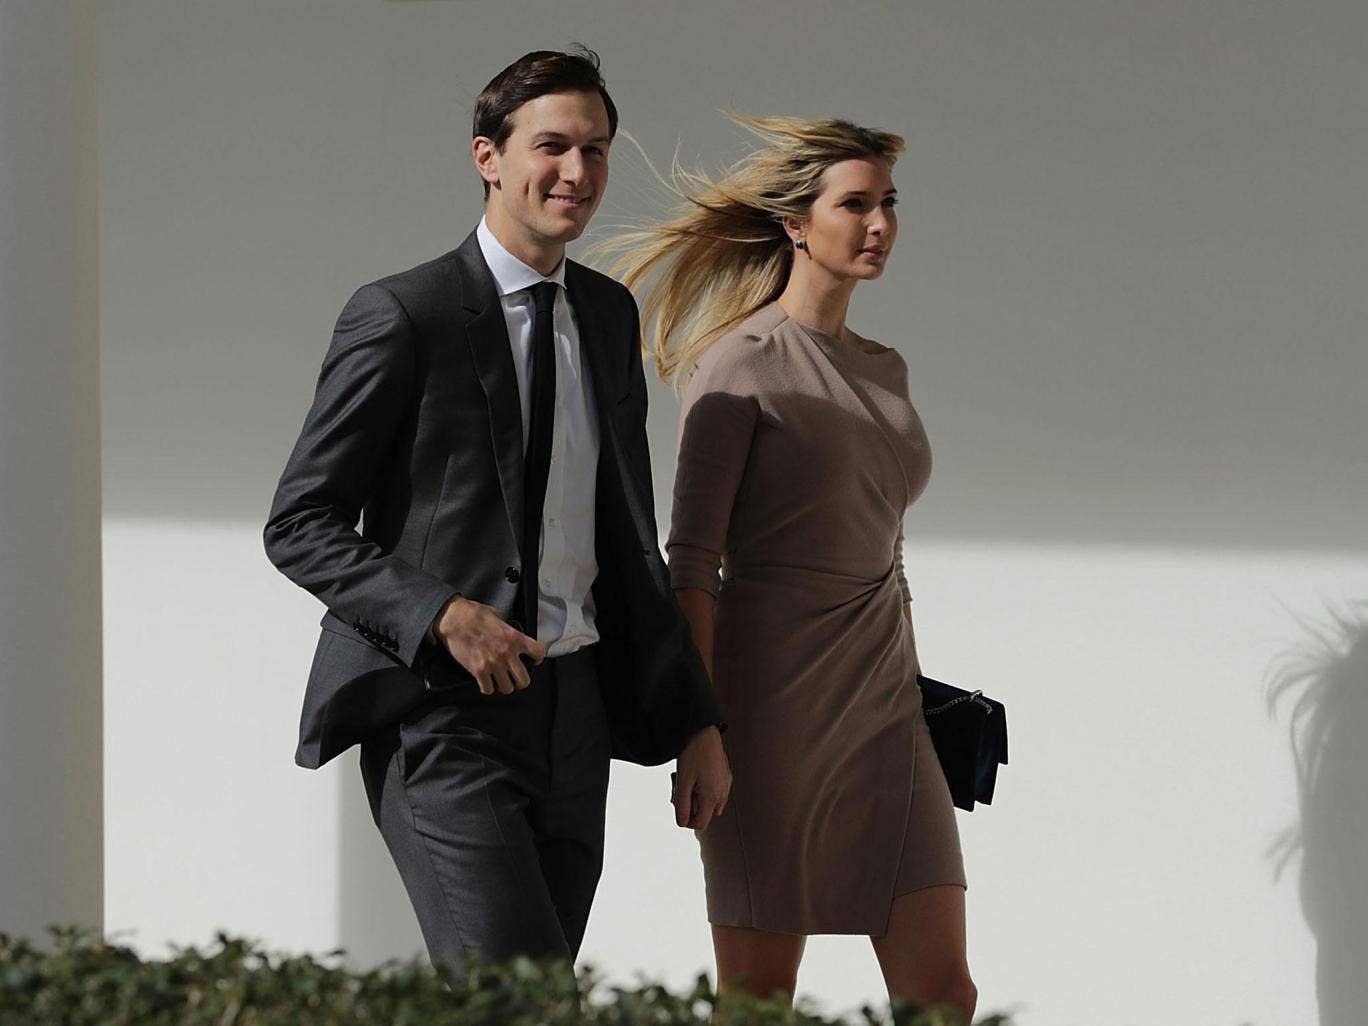 Jeffrey sues Ivanka Trump and Jared Kushner for hiding financial info